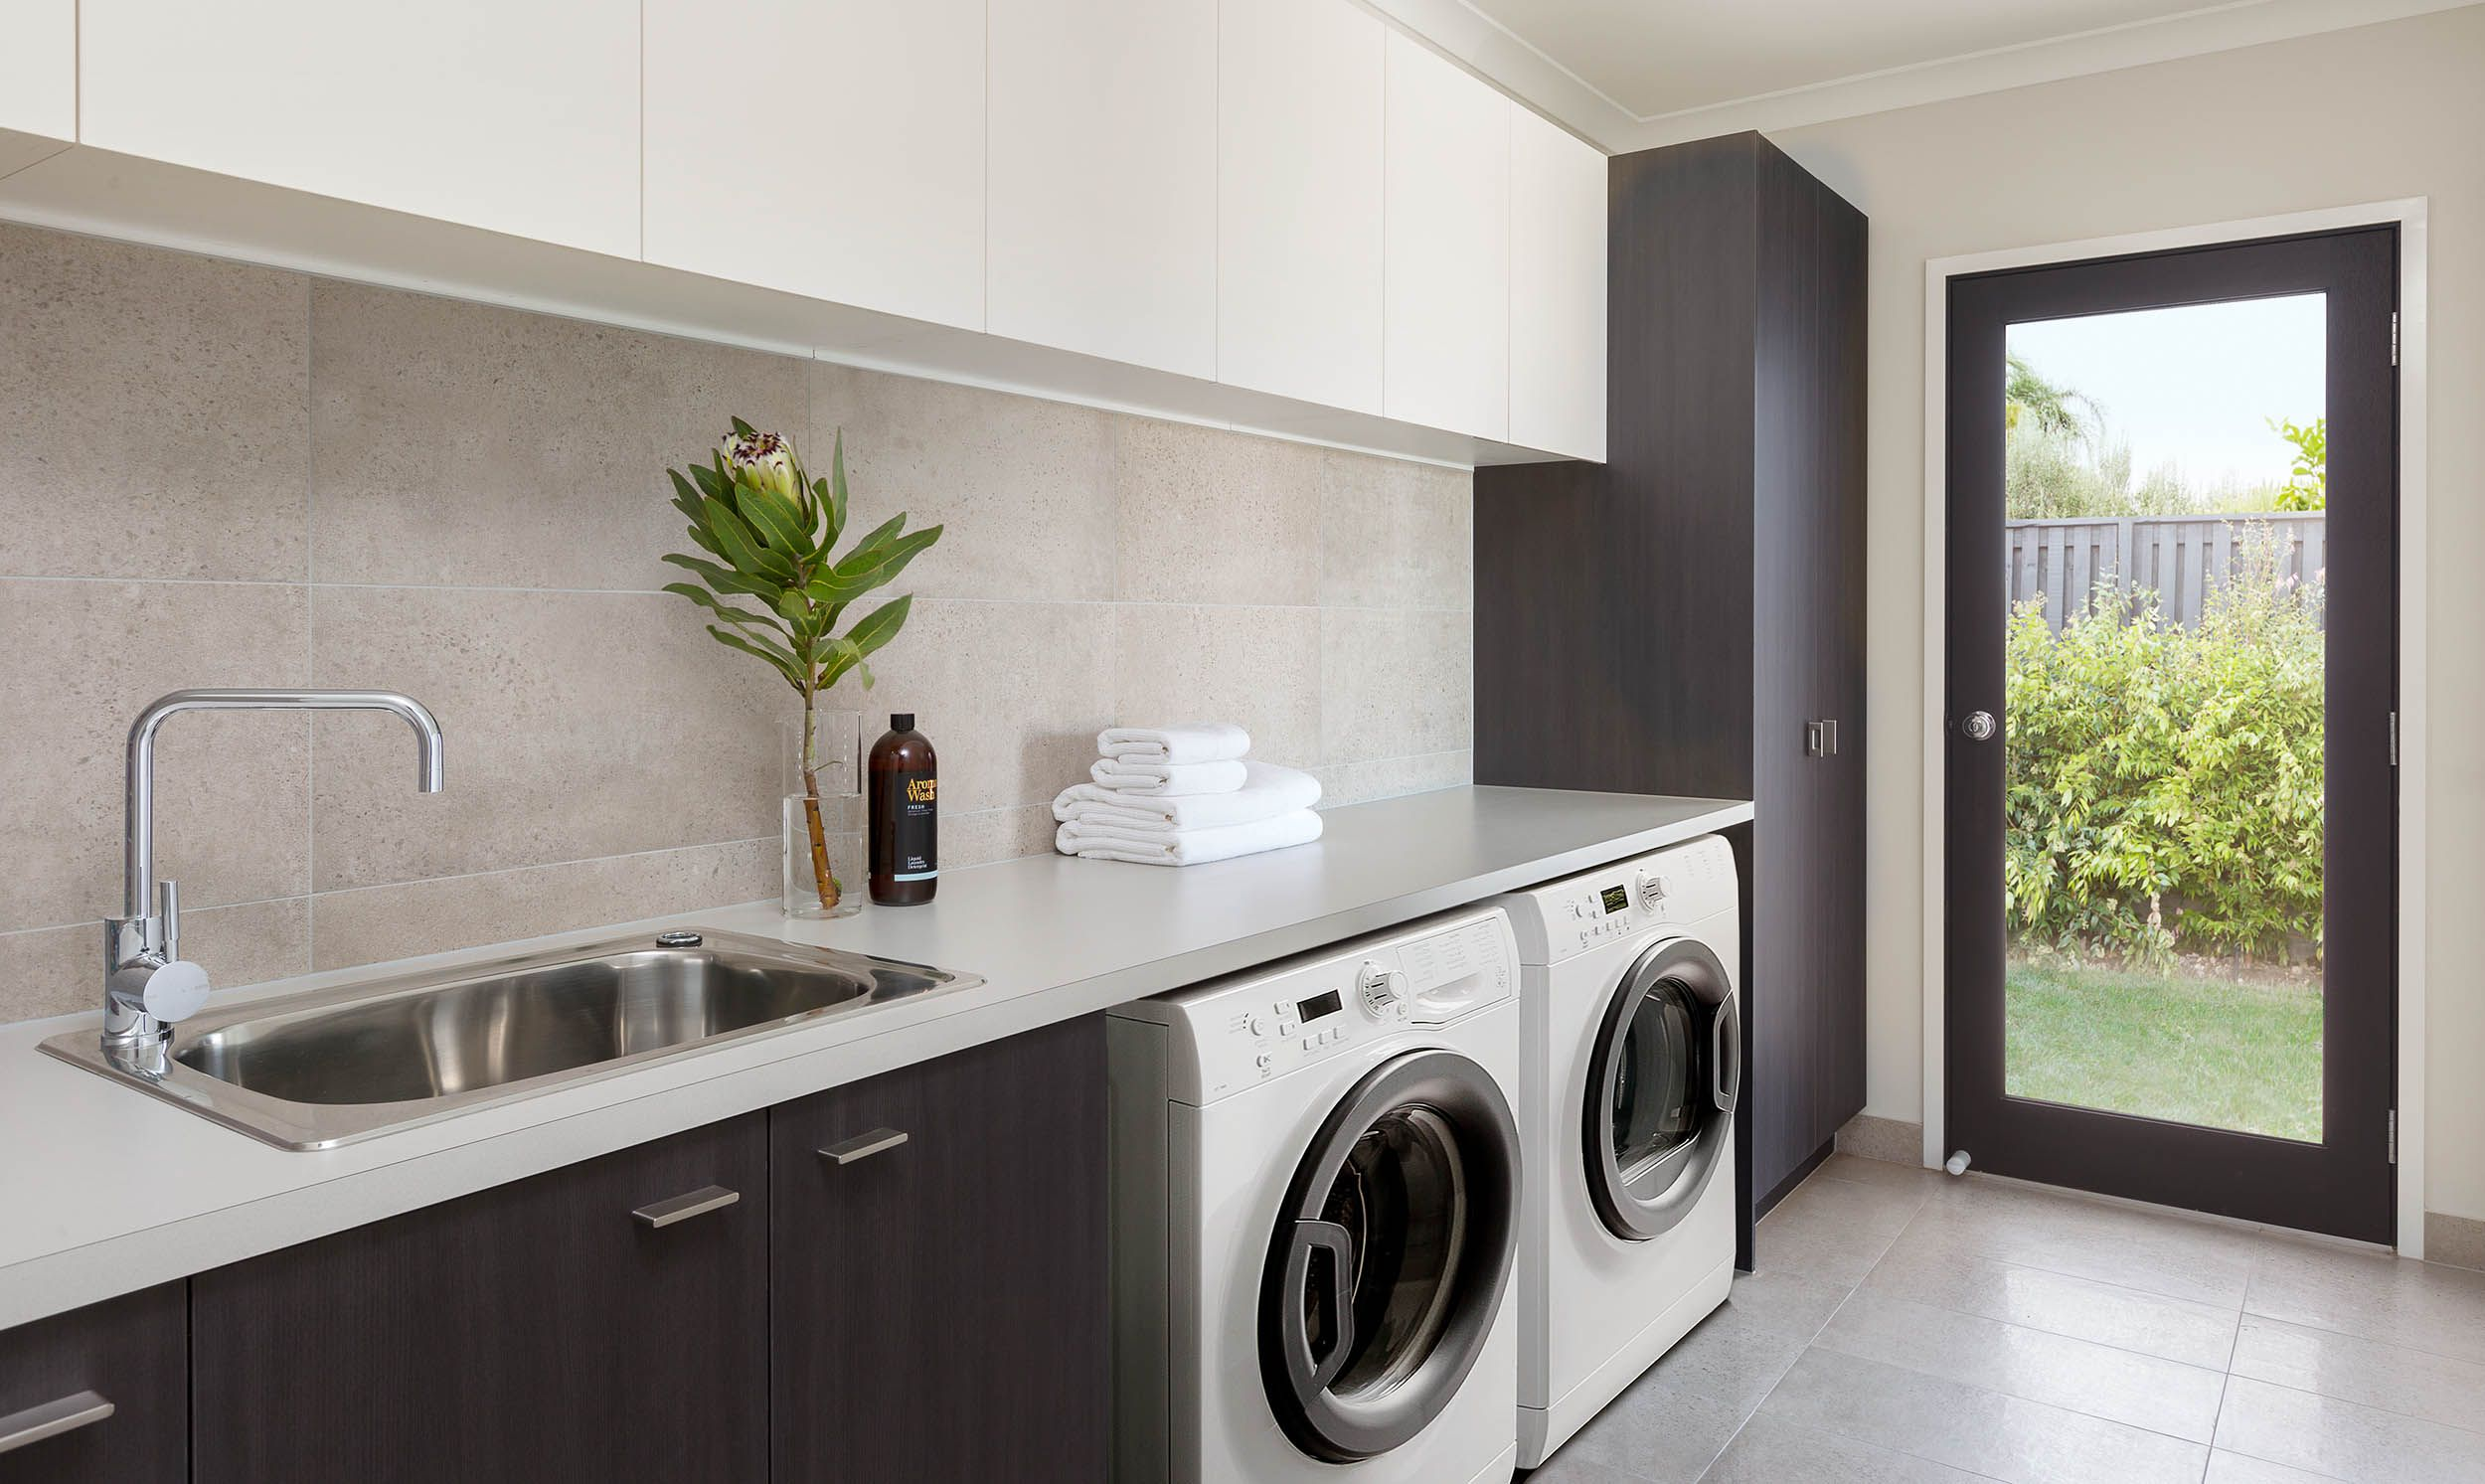 Closet Cabinet Then Sink Or Just Counter With Drawers Beneath And Then Washer Dryer Or Could Stack Modern Laundry Rooms Laundry Room Design Laundry Design